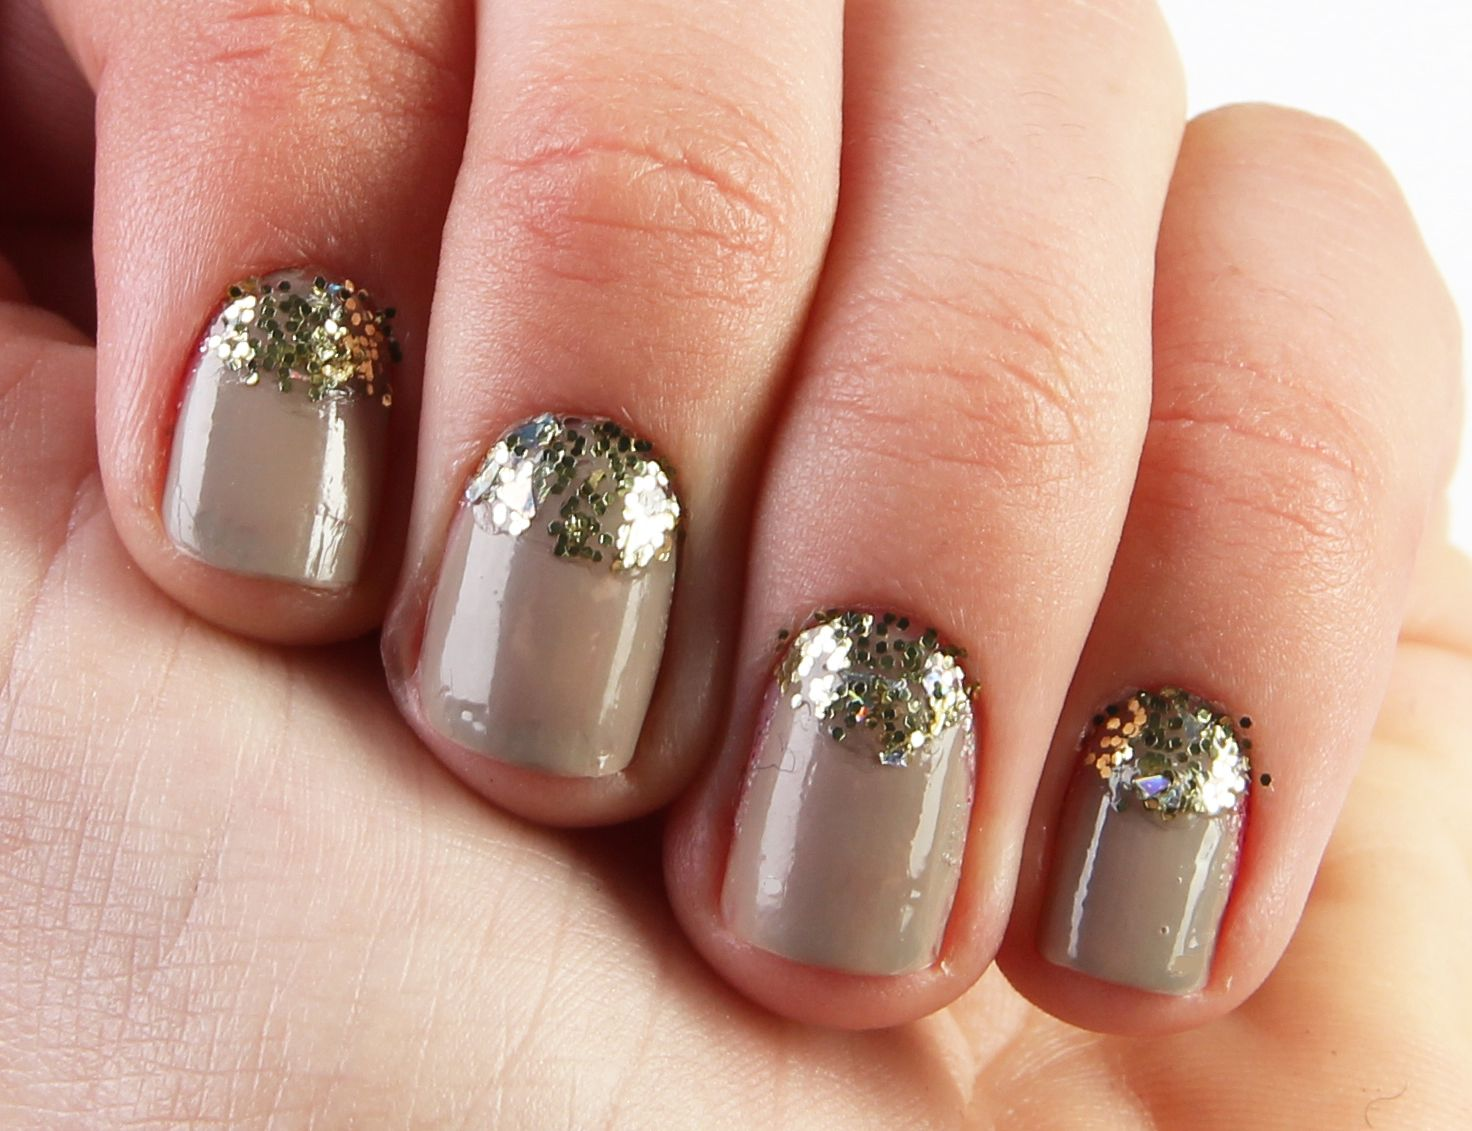 half moon manicure (to salvage shellac after nail grows out) - Half Moon Manicure (to Salvage Shellac After Nail Grows Out